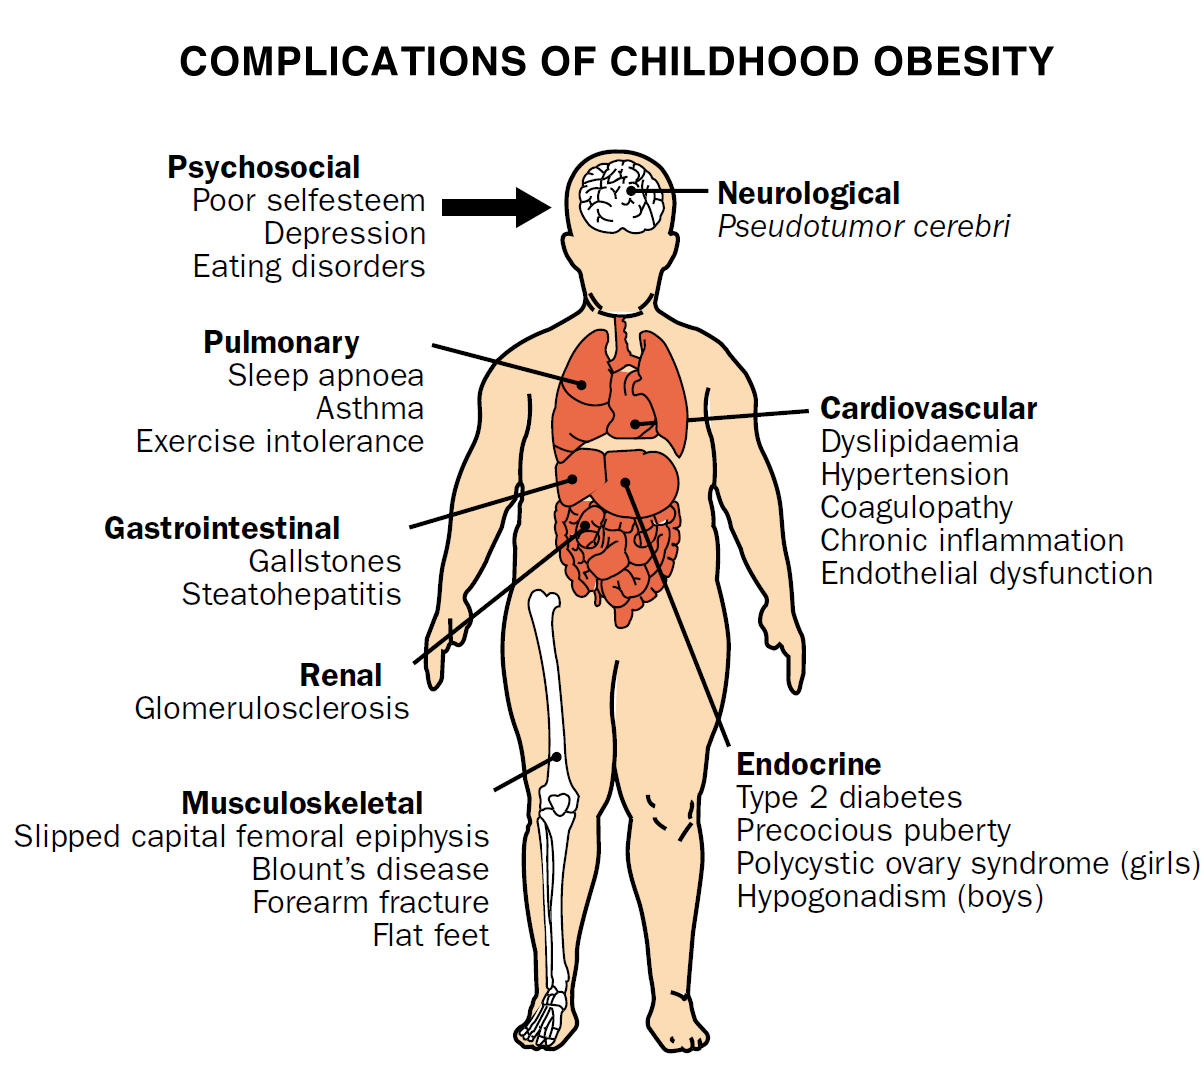 childhood obesity and the effects of the increase weight on the health and physical body of a child